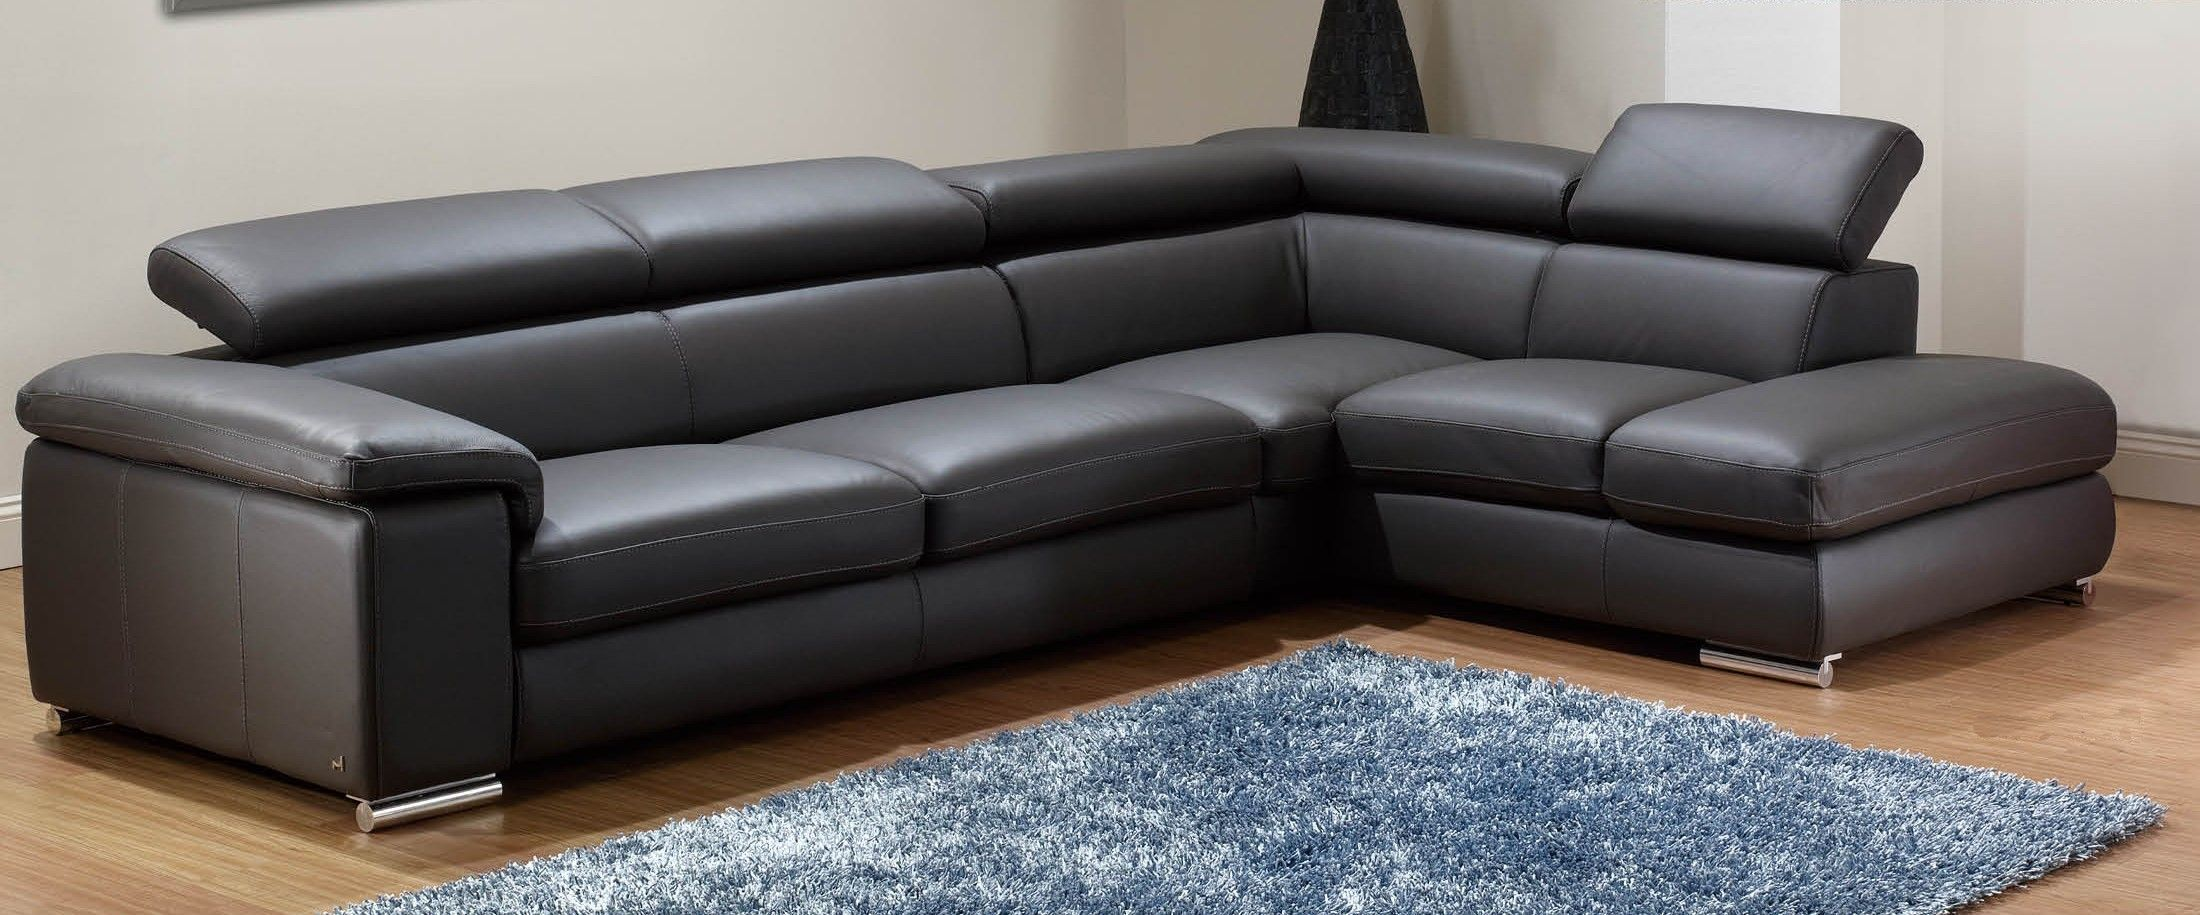 Awesome Modern Leather Sectional Sofa , Epic Modern Leather Sectional Sofa  19 In Sofas And Couches